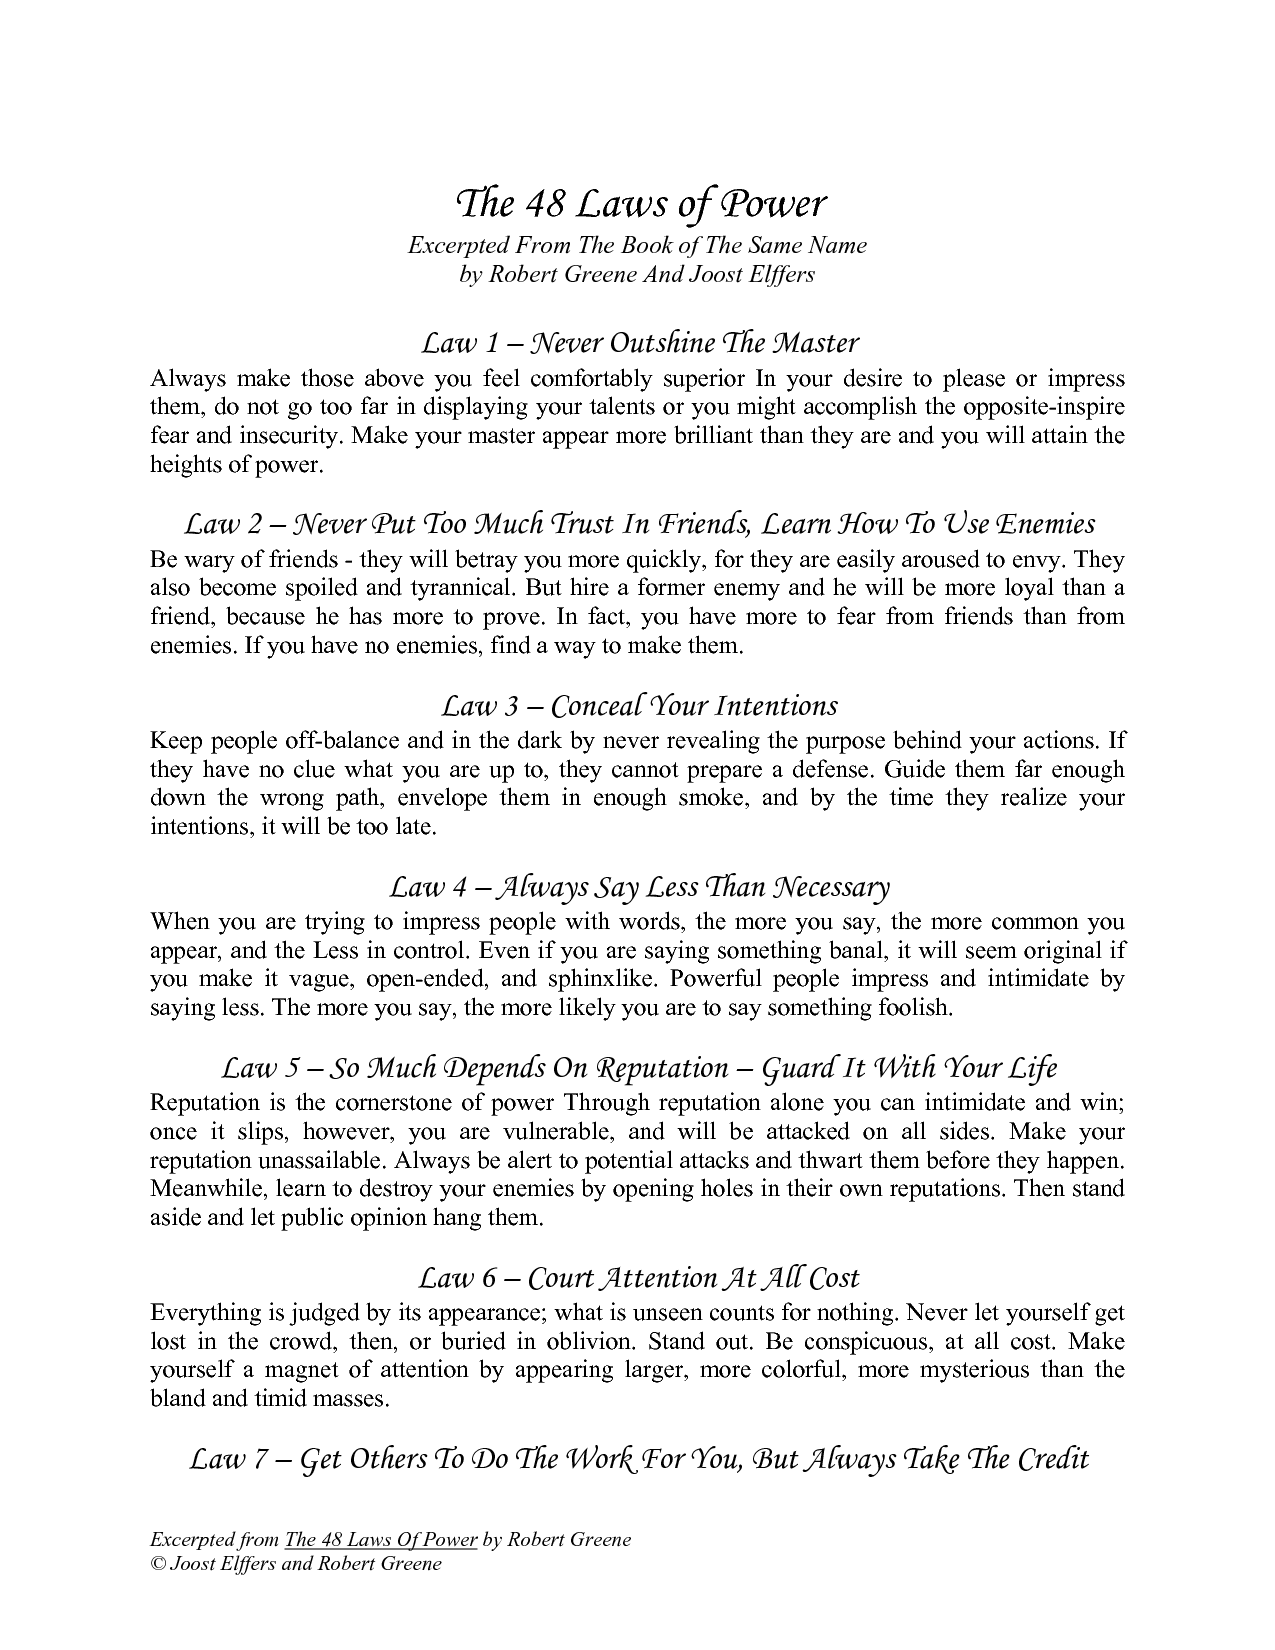 The 48 Laws of Power Summary Review & PDF